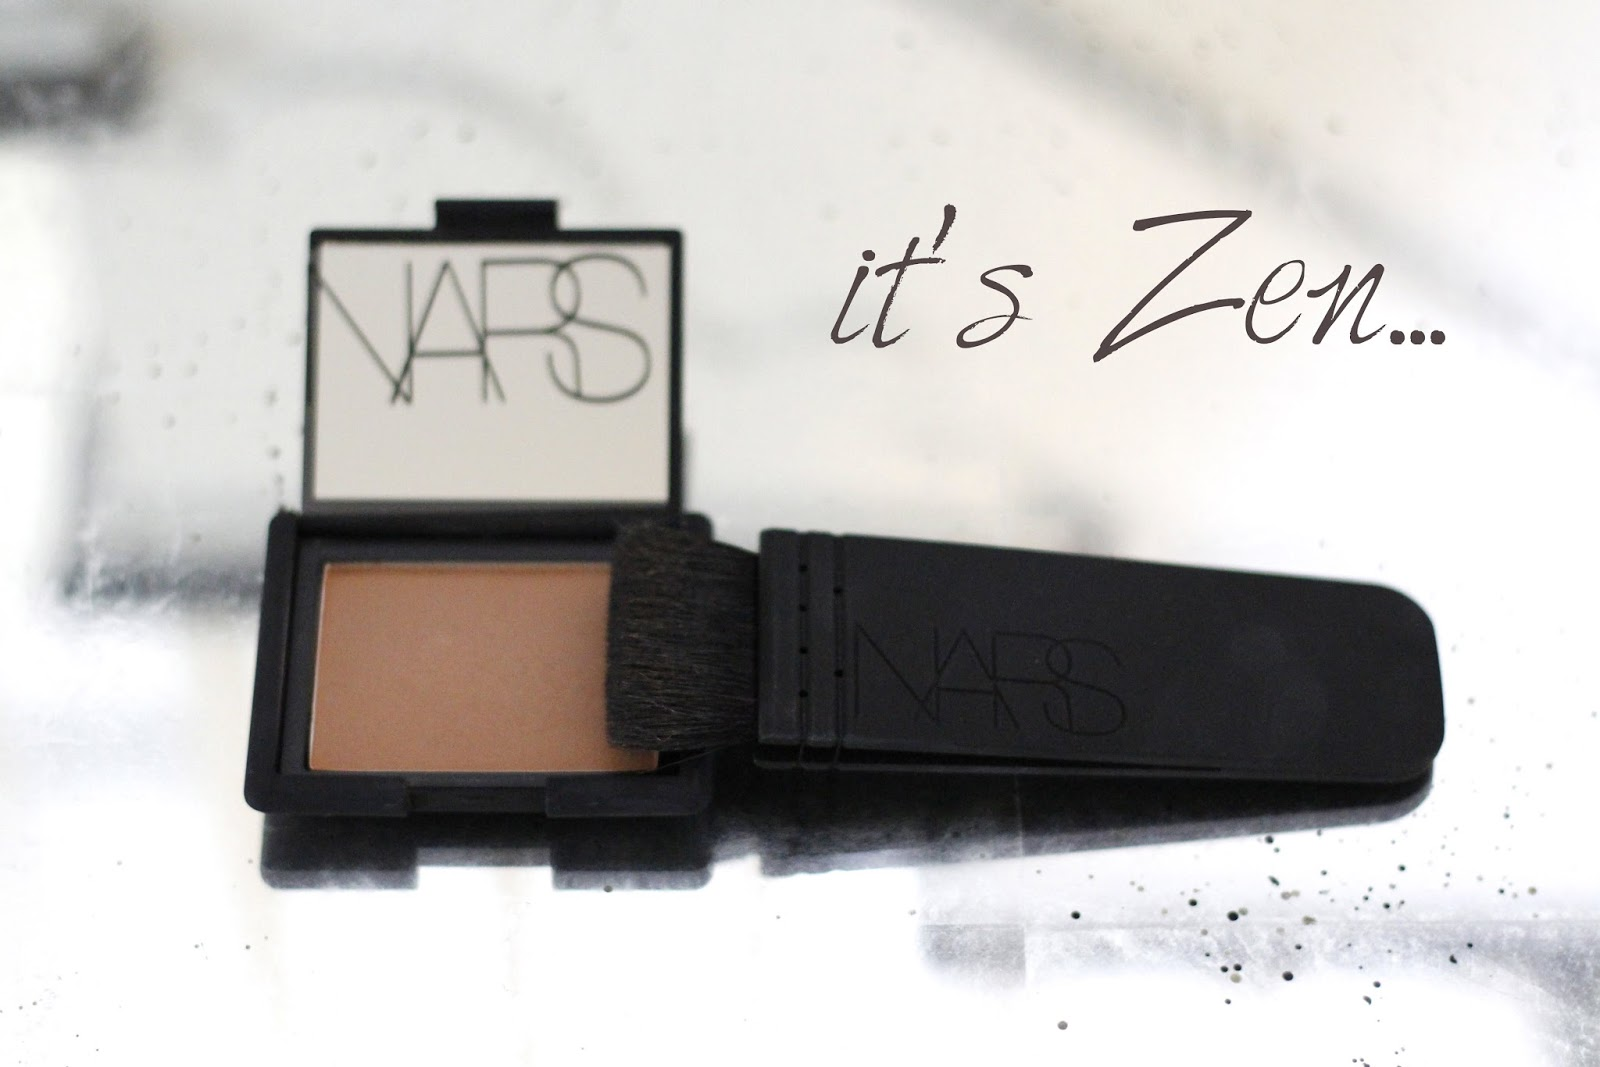 close-up of NARS blush in 'Zen' and NARS Artisan Kabuki Contour brush